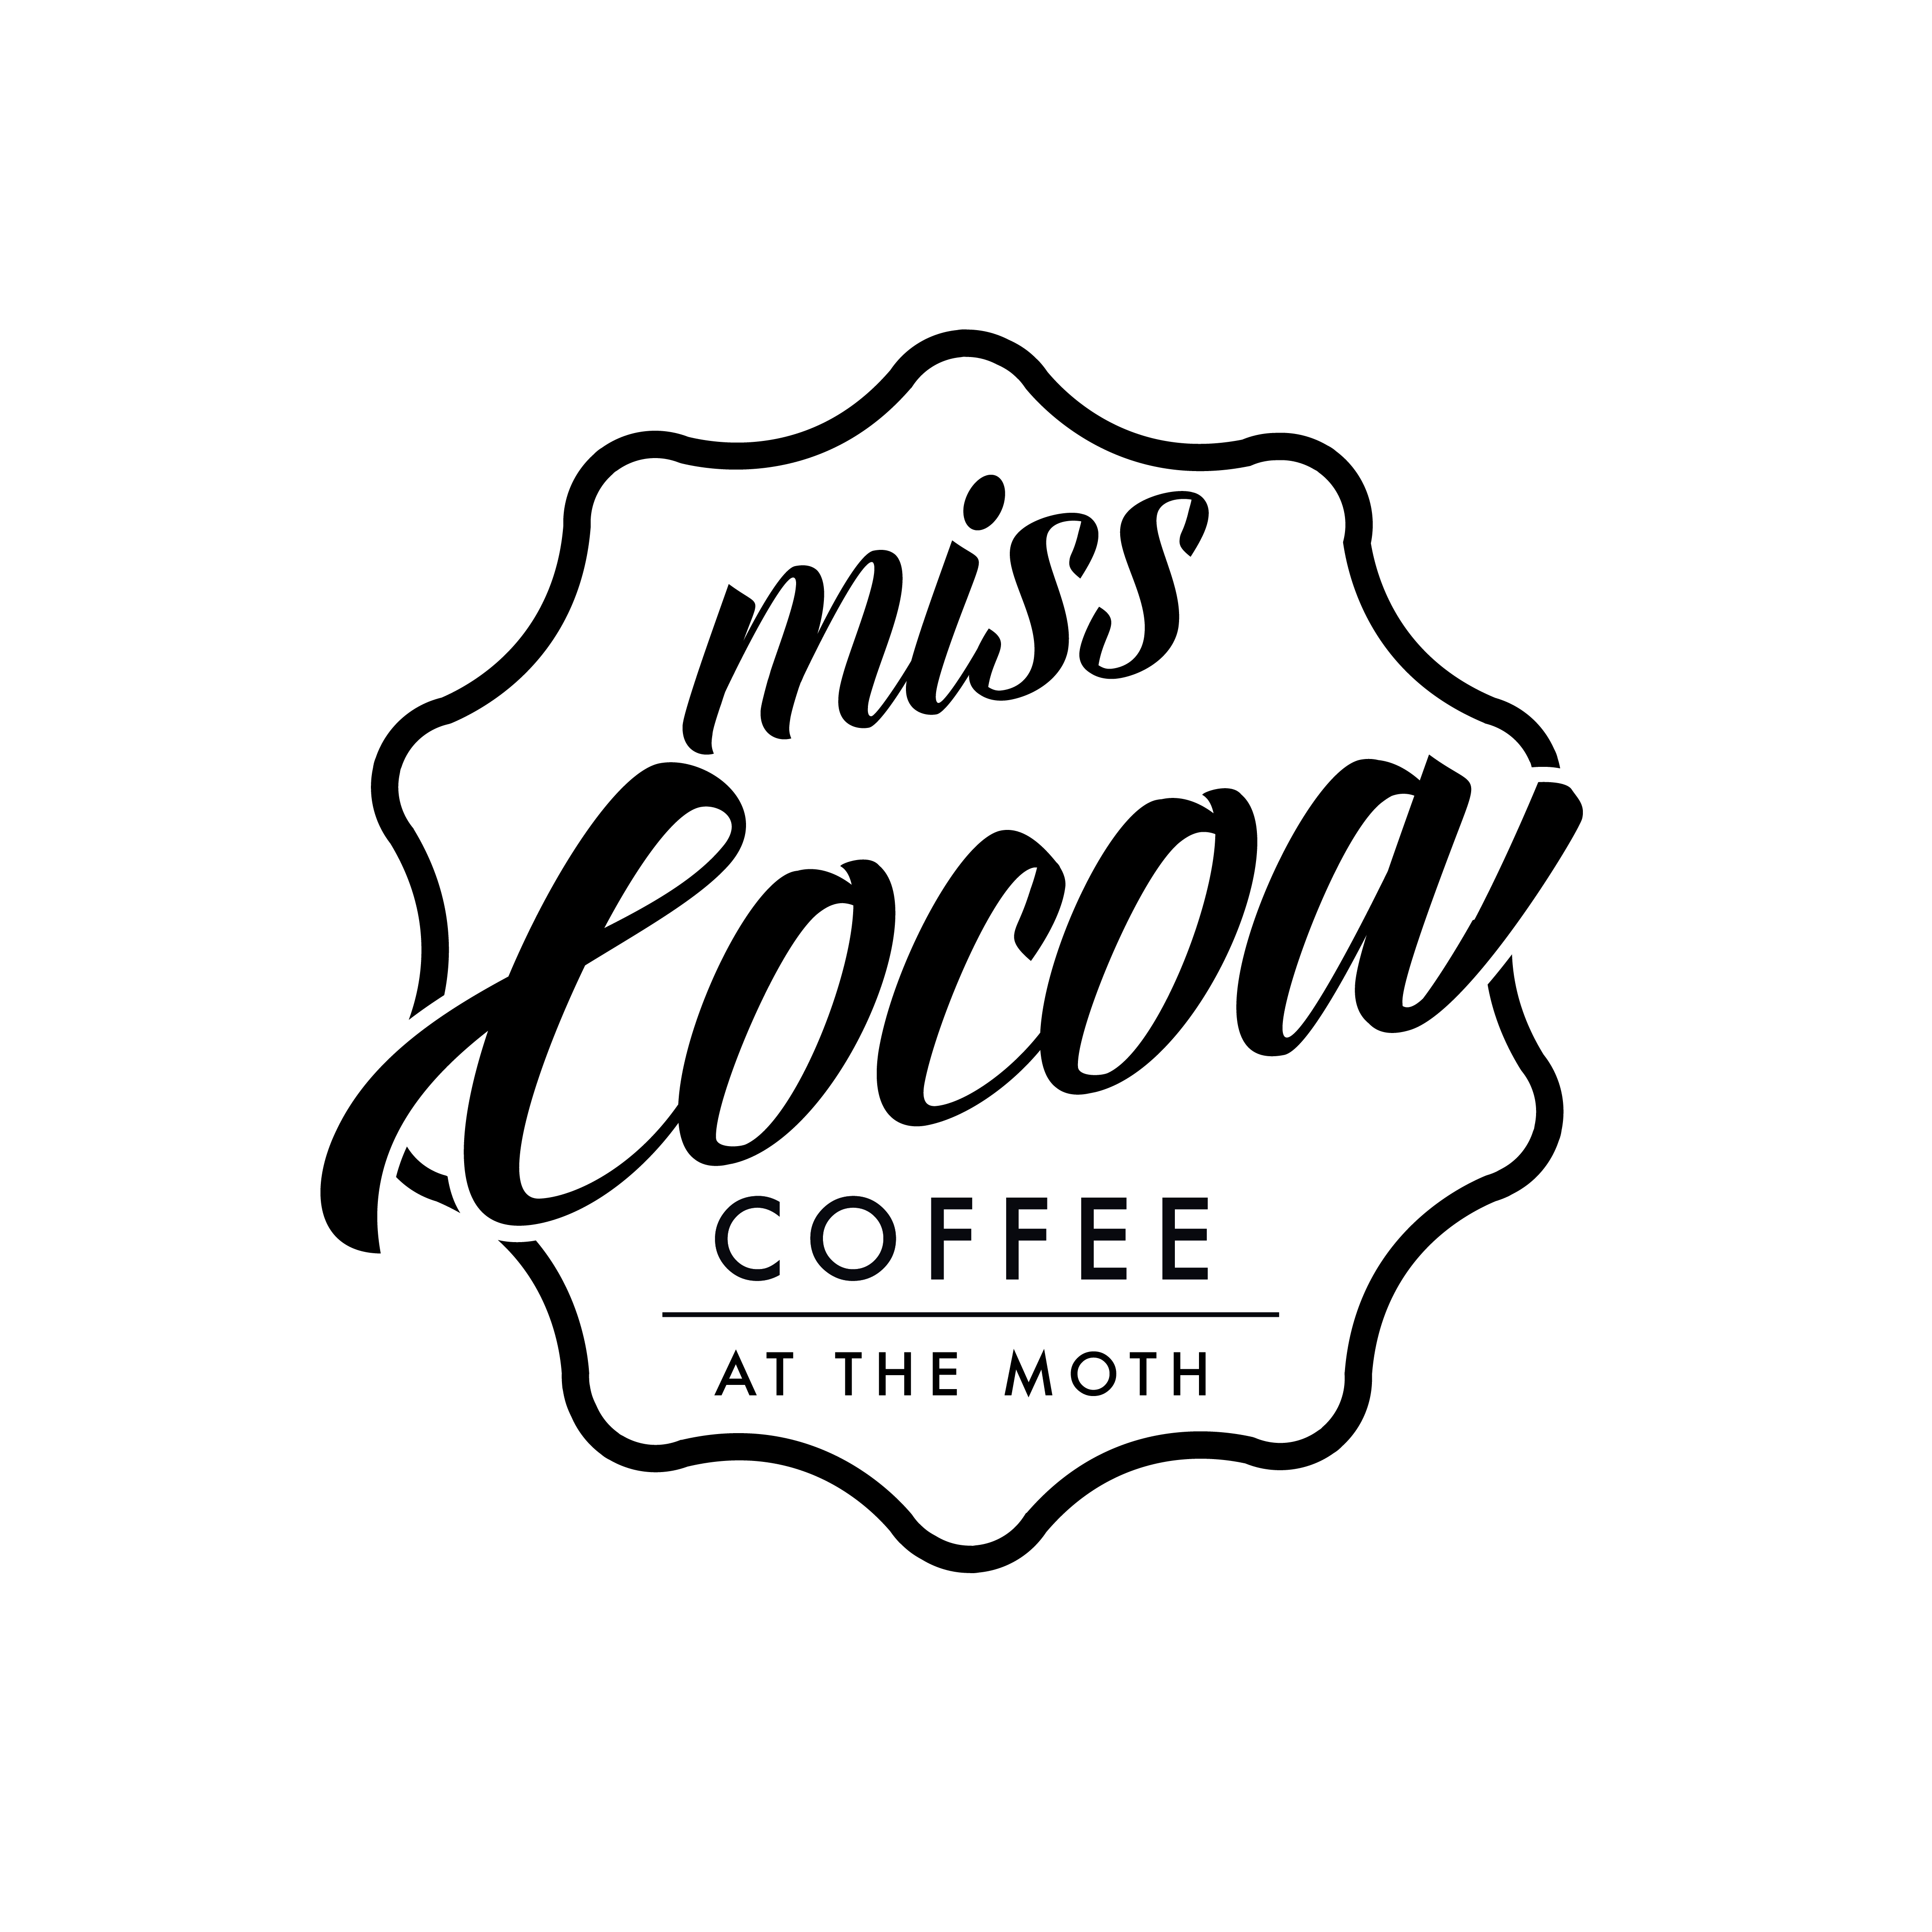 Miss Cocoa